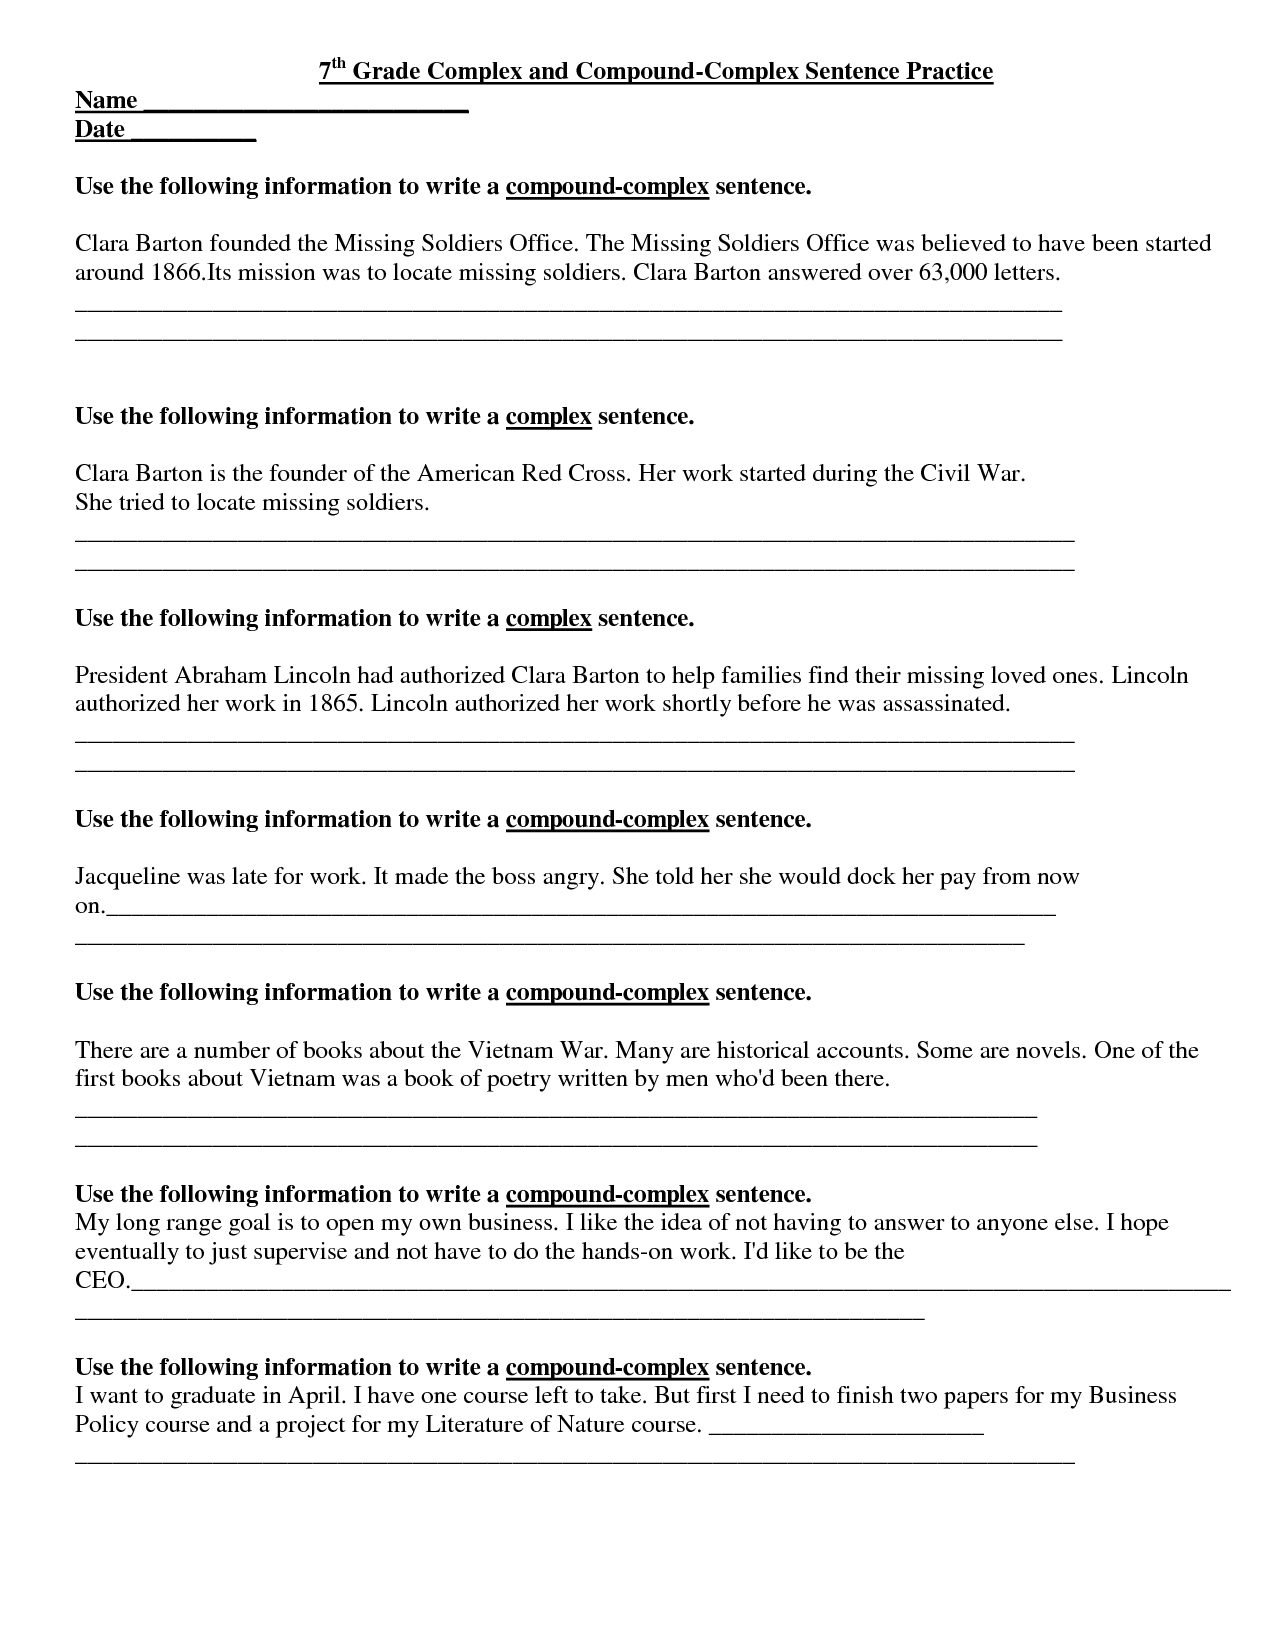 worksheet 4th Grade Reading Passages free 4th grade reading comprehension passages and questions 36 weeks printable pdf worksheets to